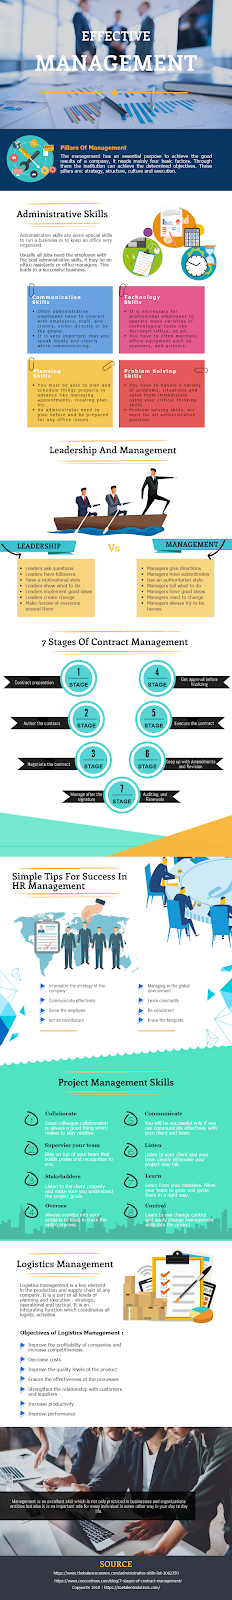 Importance Of Personal Department Management